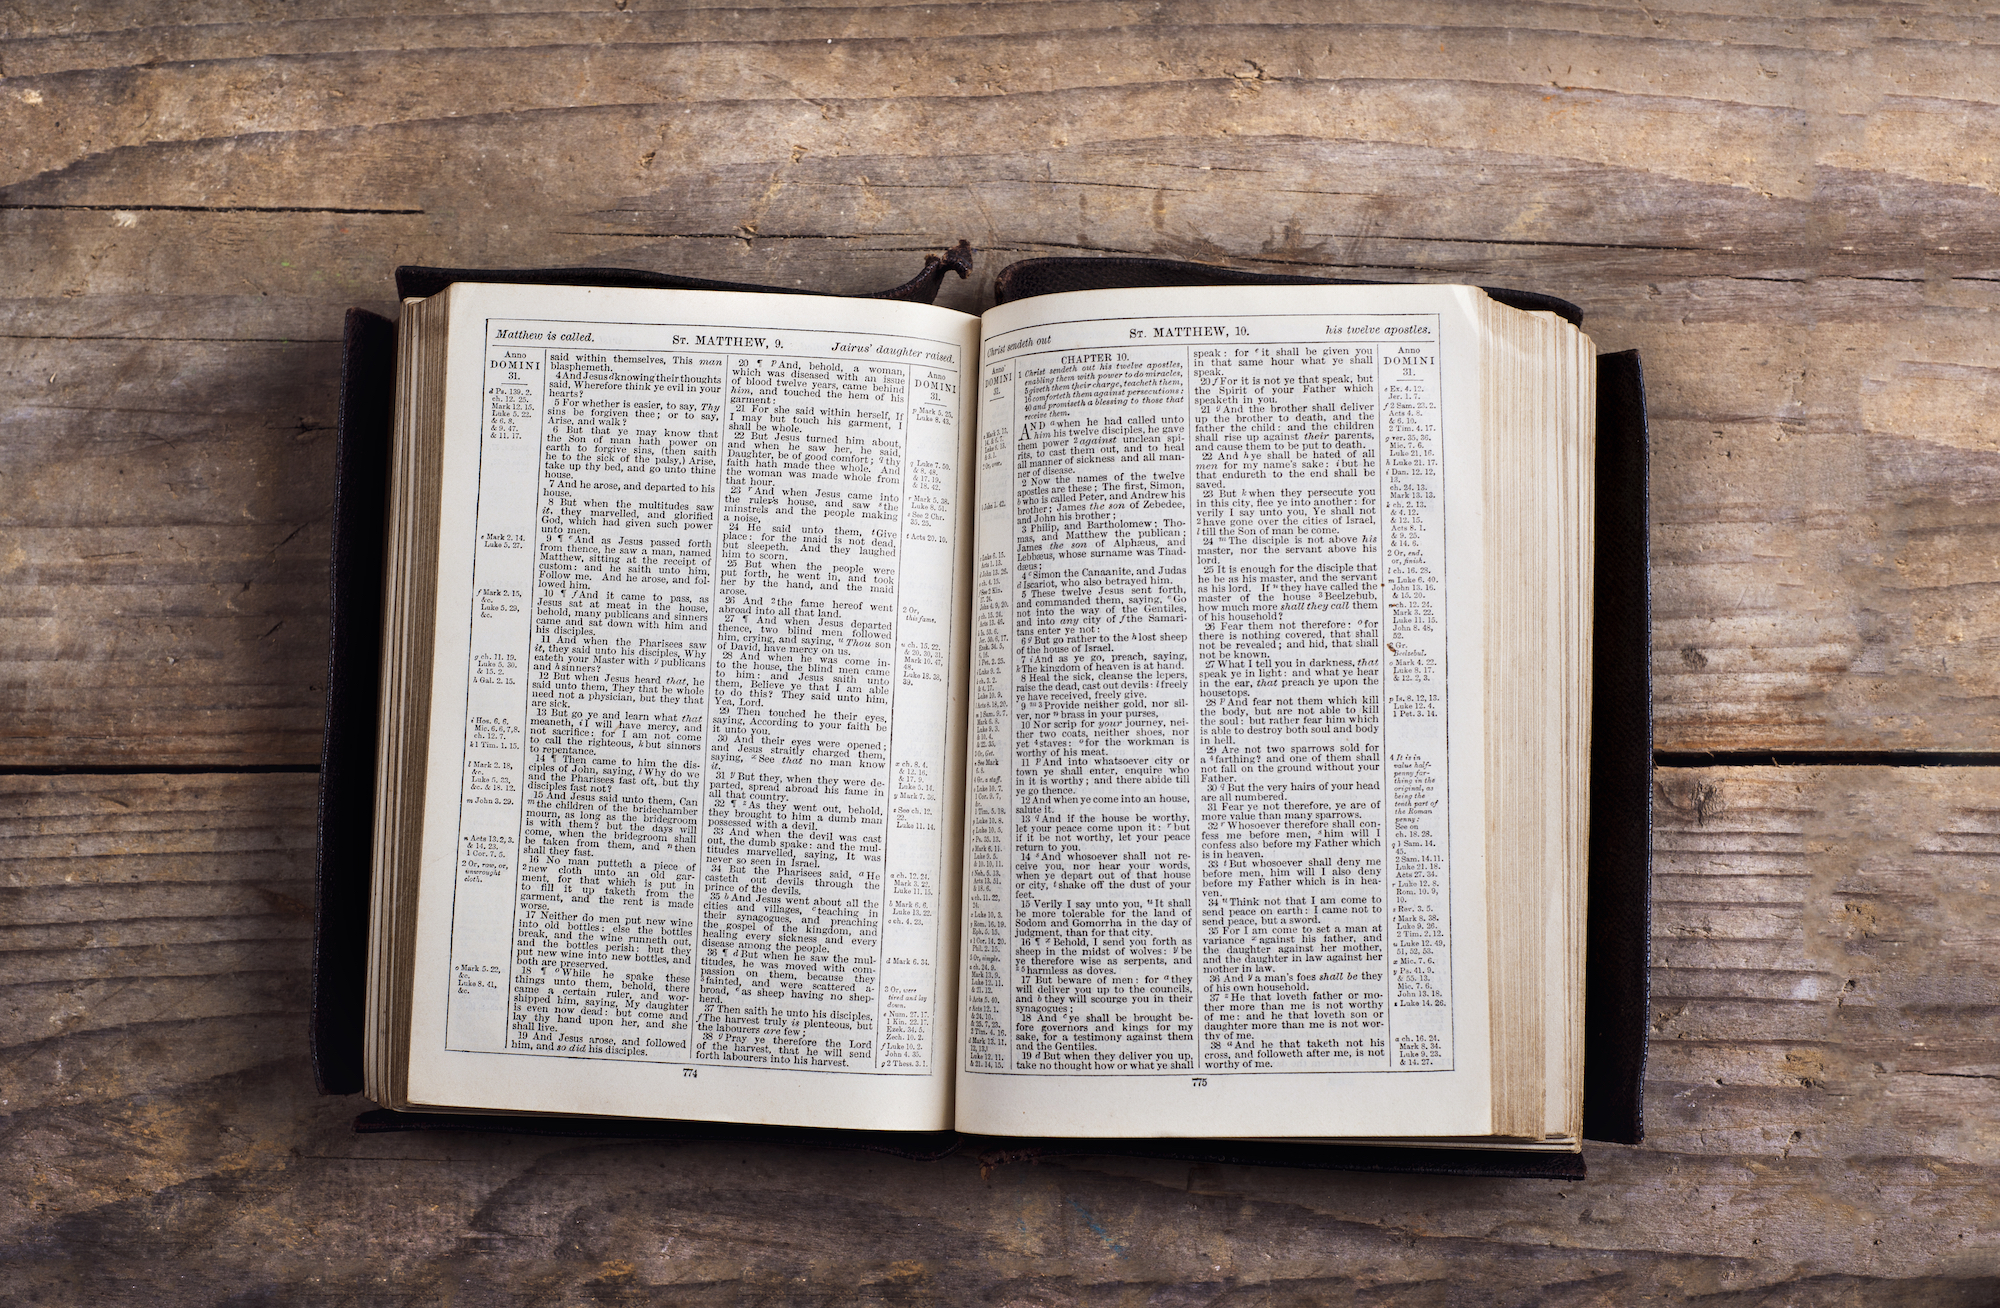 graphicstock-opened-bible-on-a-wooden-desk-background_HC9Nsrp-W.jpg